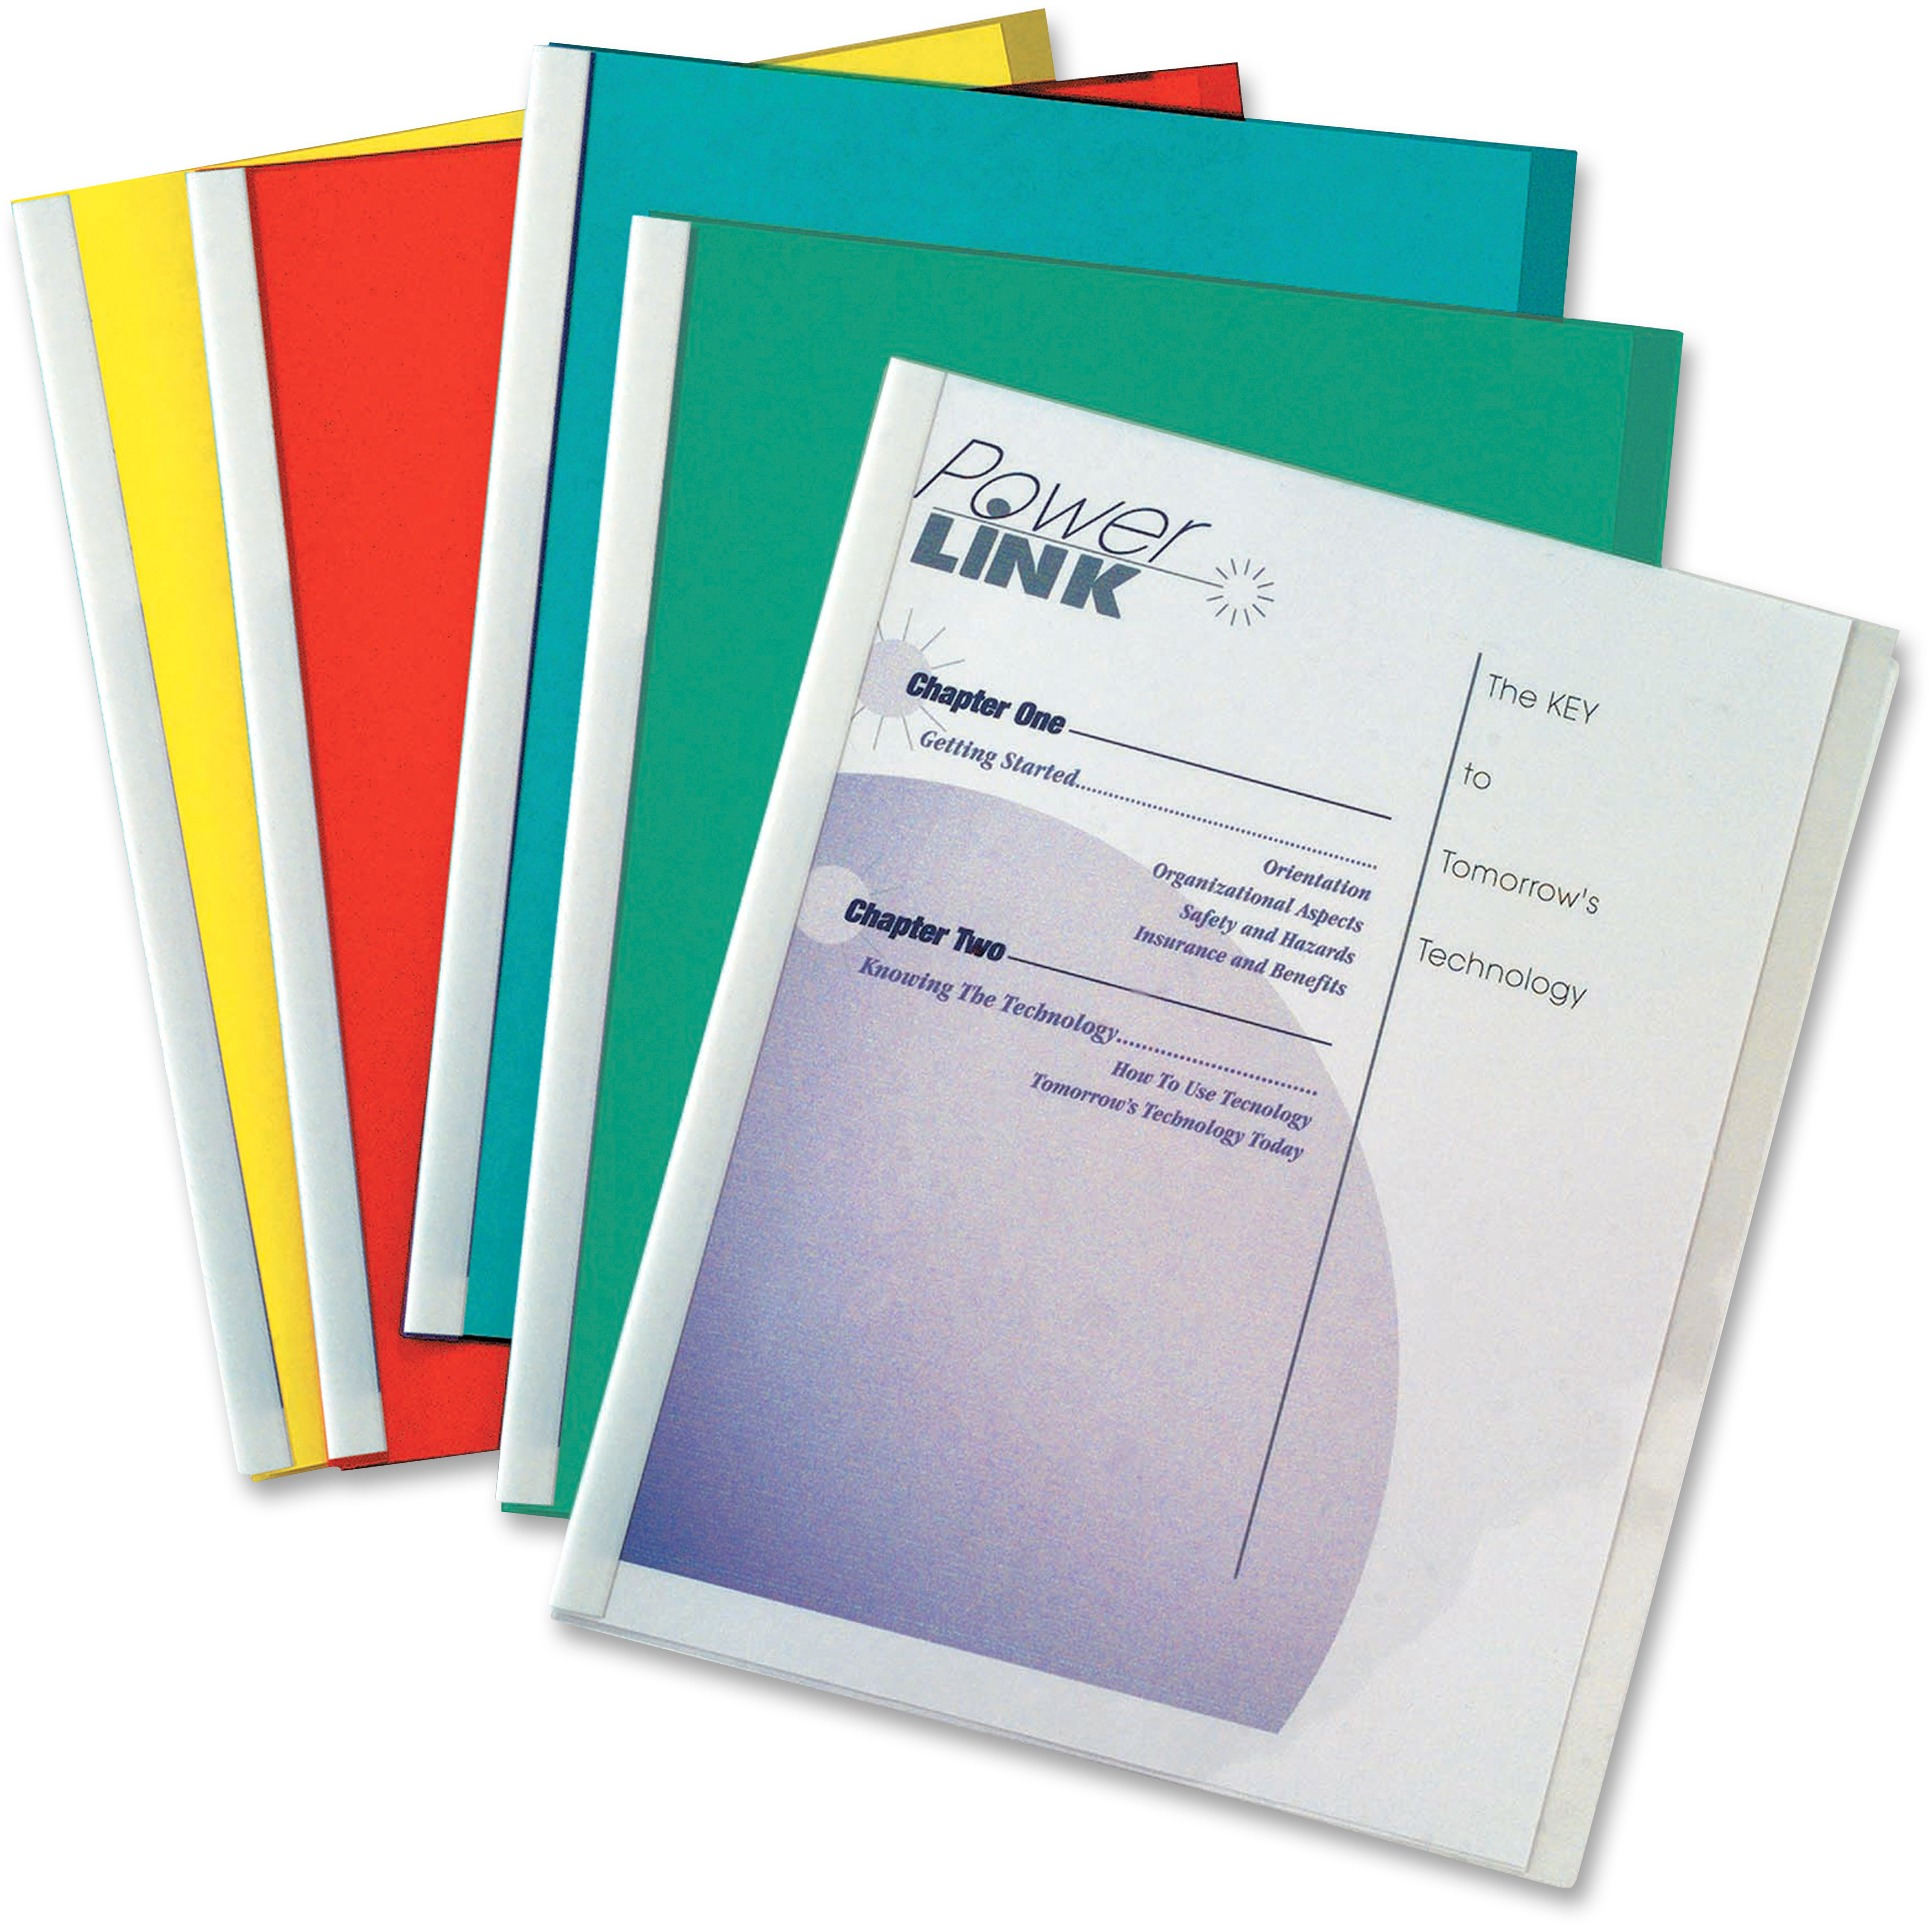 C-Line Report Covers with Binding Bars, Vinyl, Assorted, 8 1 2 x 11, 50 BX by C-LINE PRODUCTS, INC